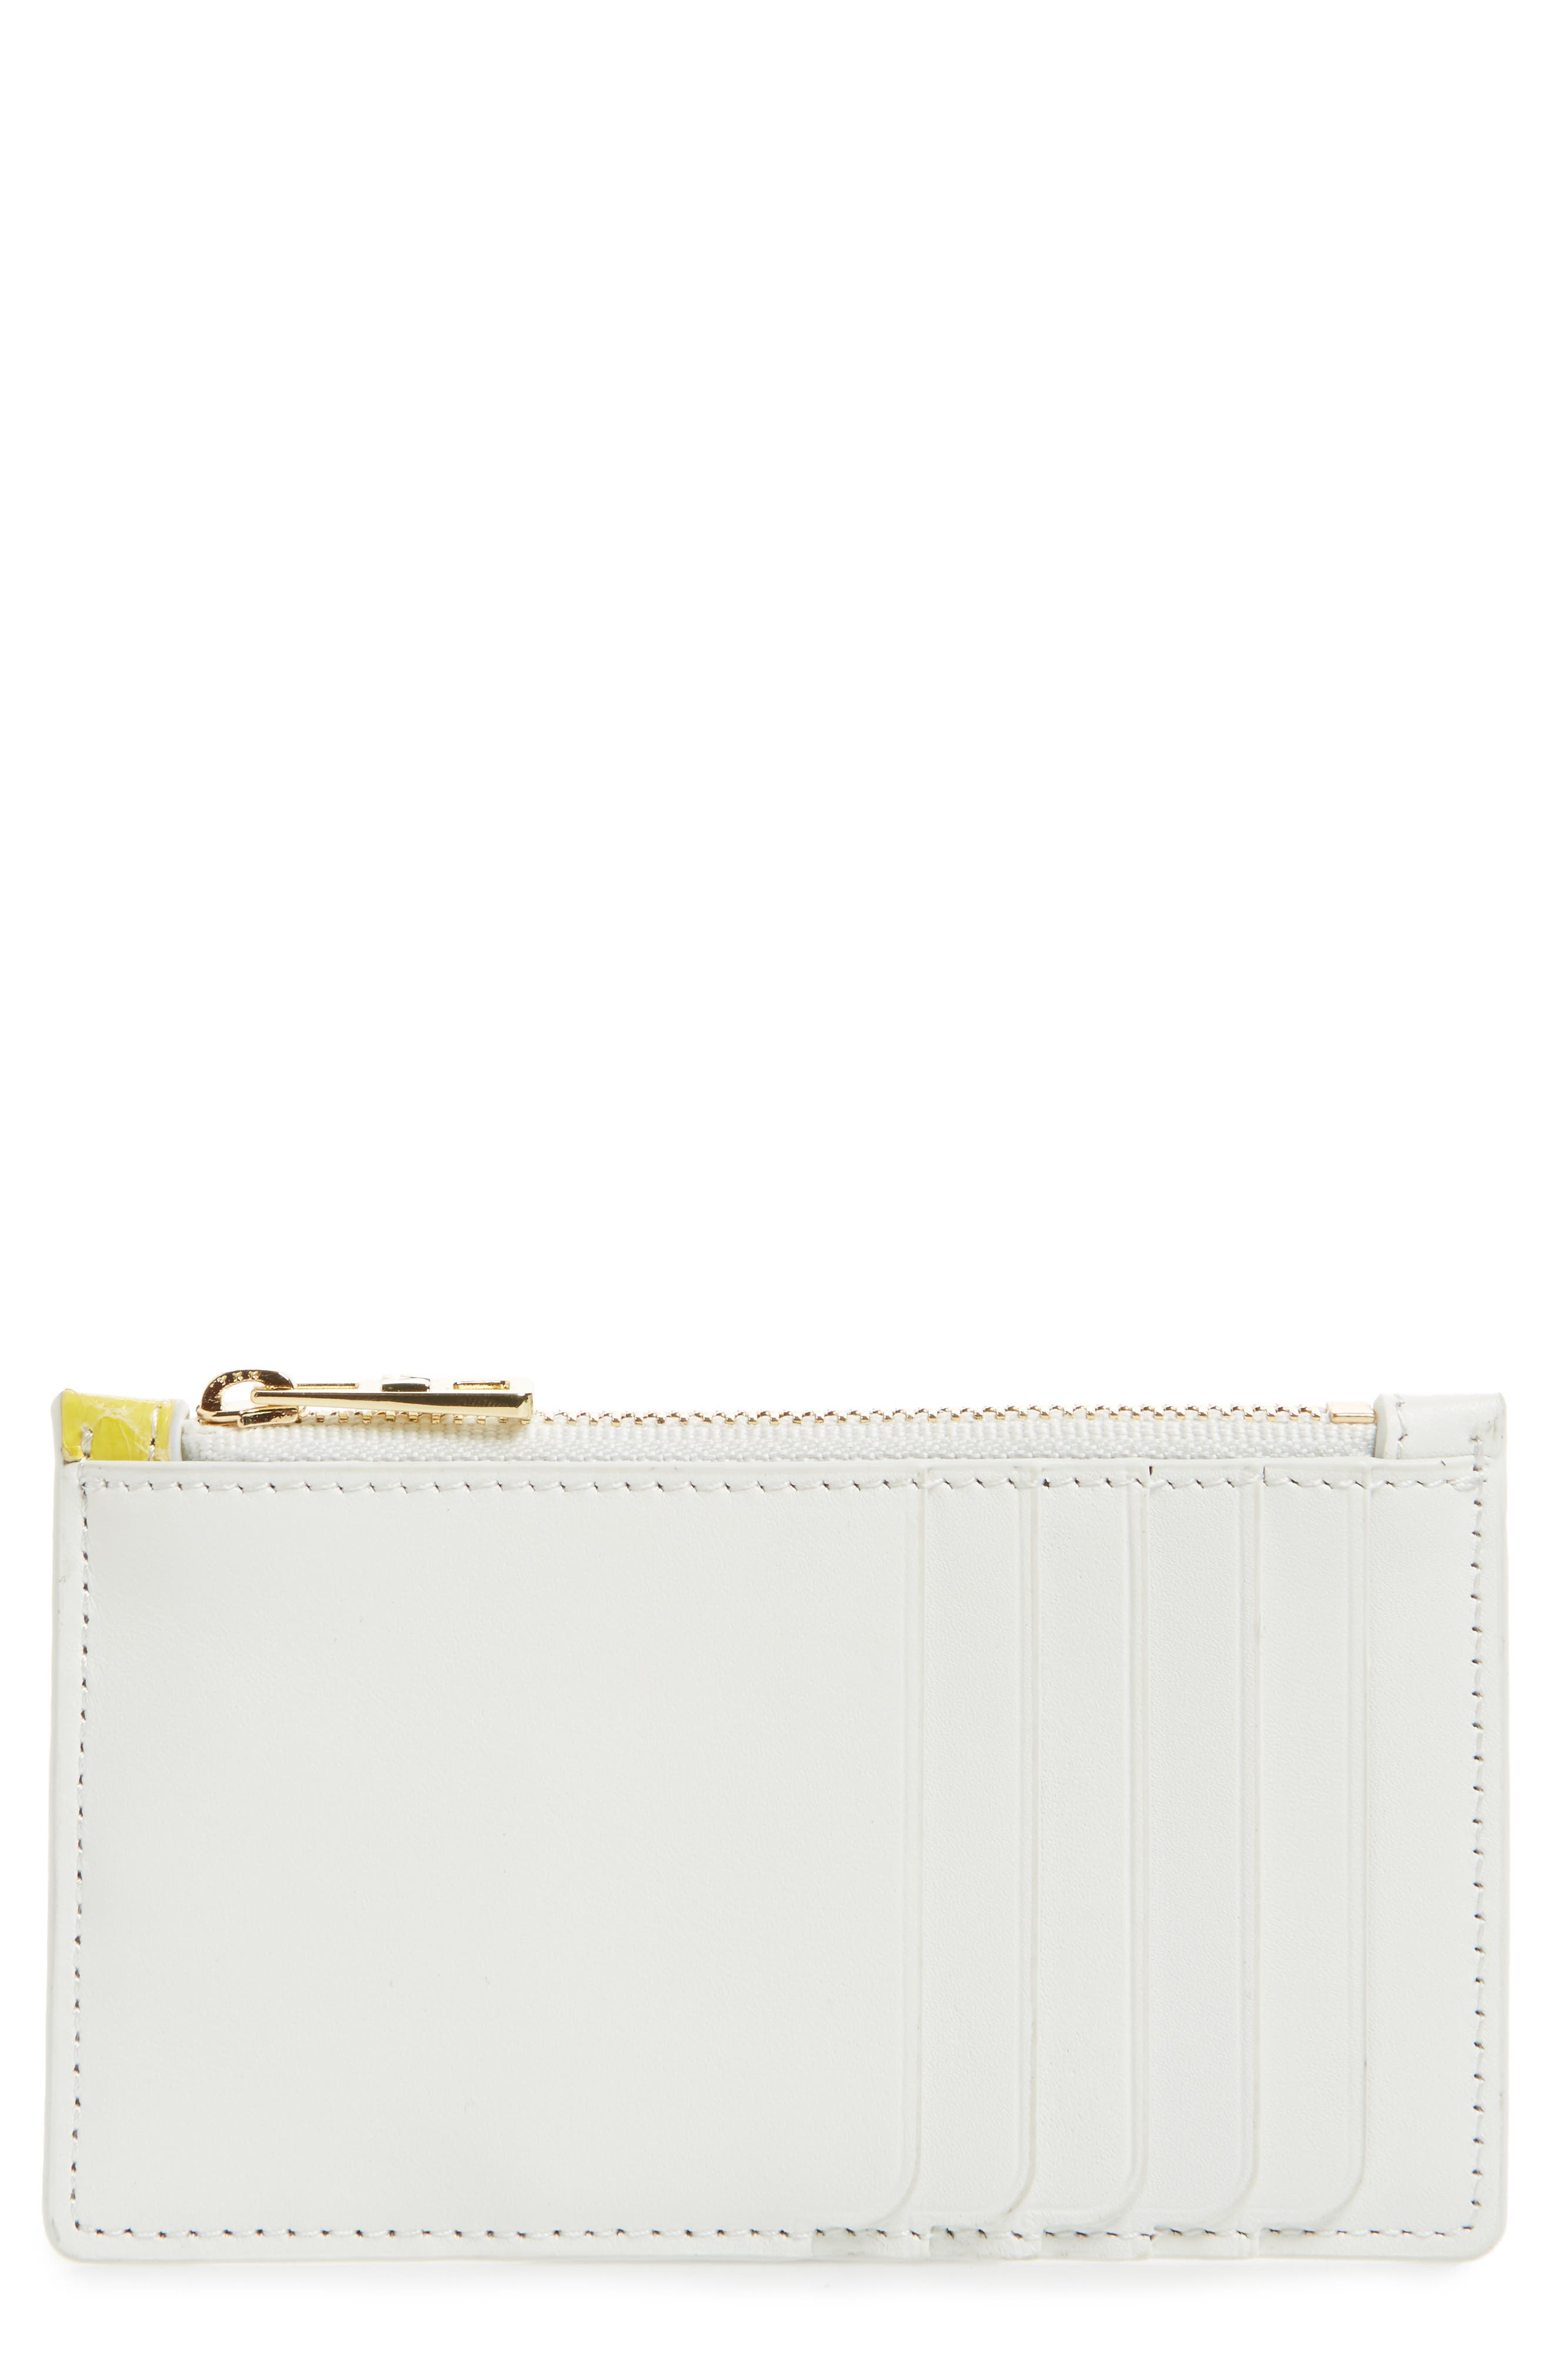 Small Leather & Genuine Snakeskin Card Case,                             Main thumbnail 1, color,                             Yellow/ Silver/ White